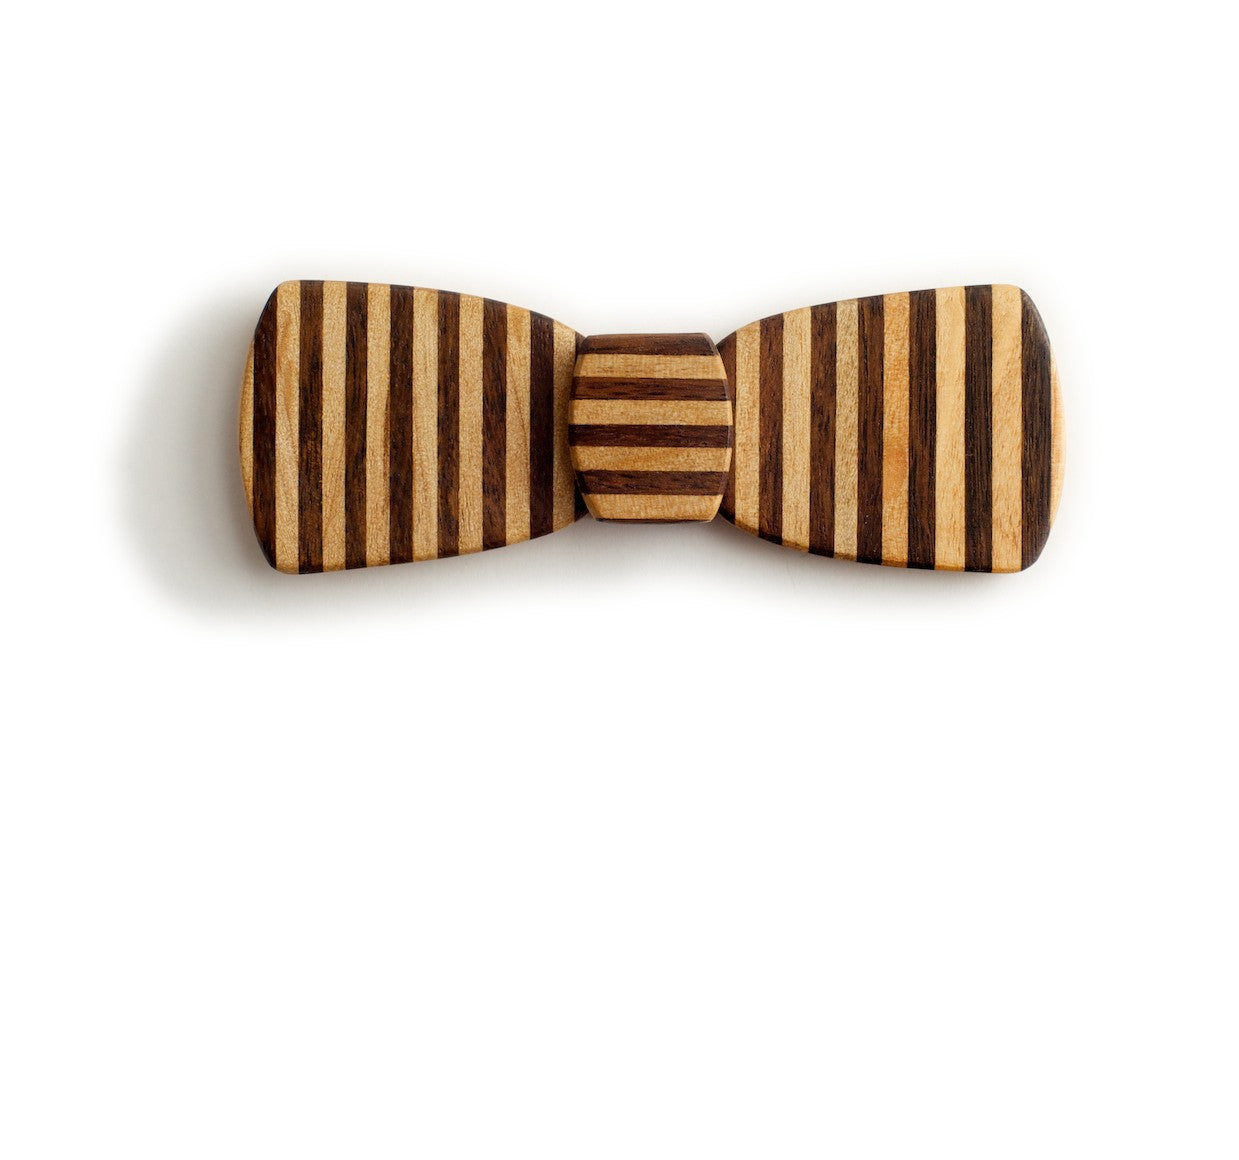 Batwing Hipster Wood Bow Tie - Pinstripe the wooden bowtie company - An ideal quirky men's gift for the man